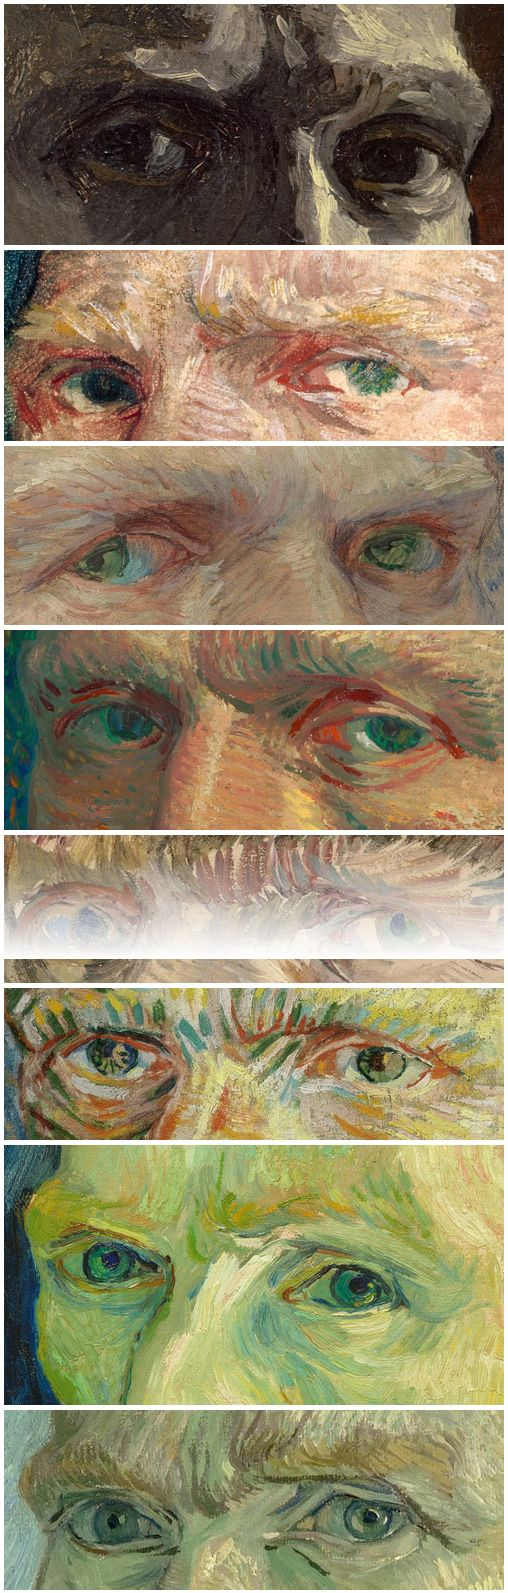 Les yeux de Vincent van Gogh: Self Portraits,  1886-1889                                                                                                                                                     More